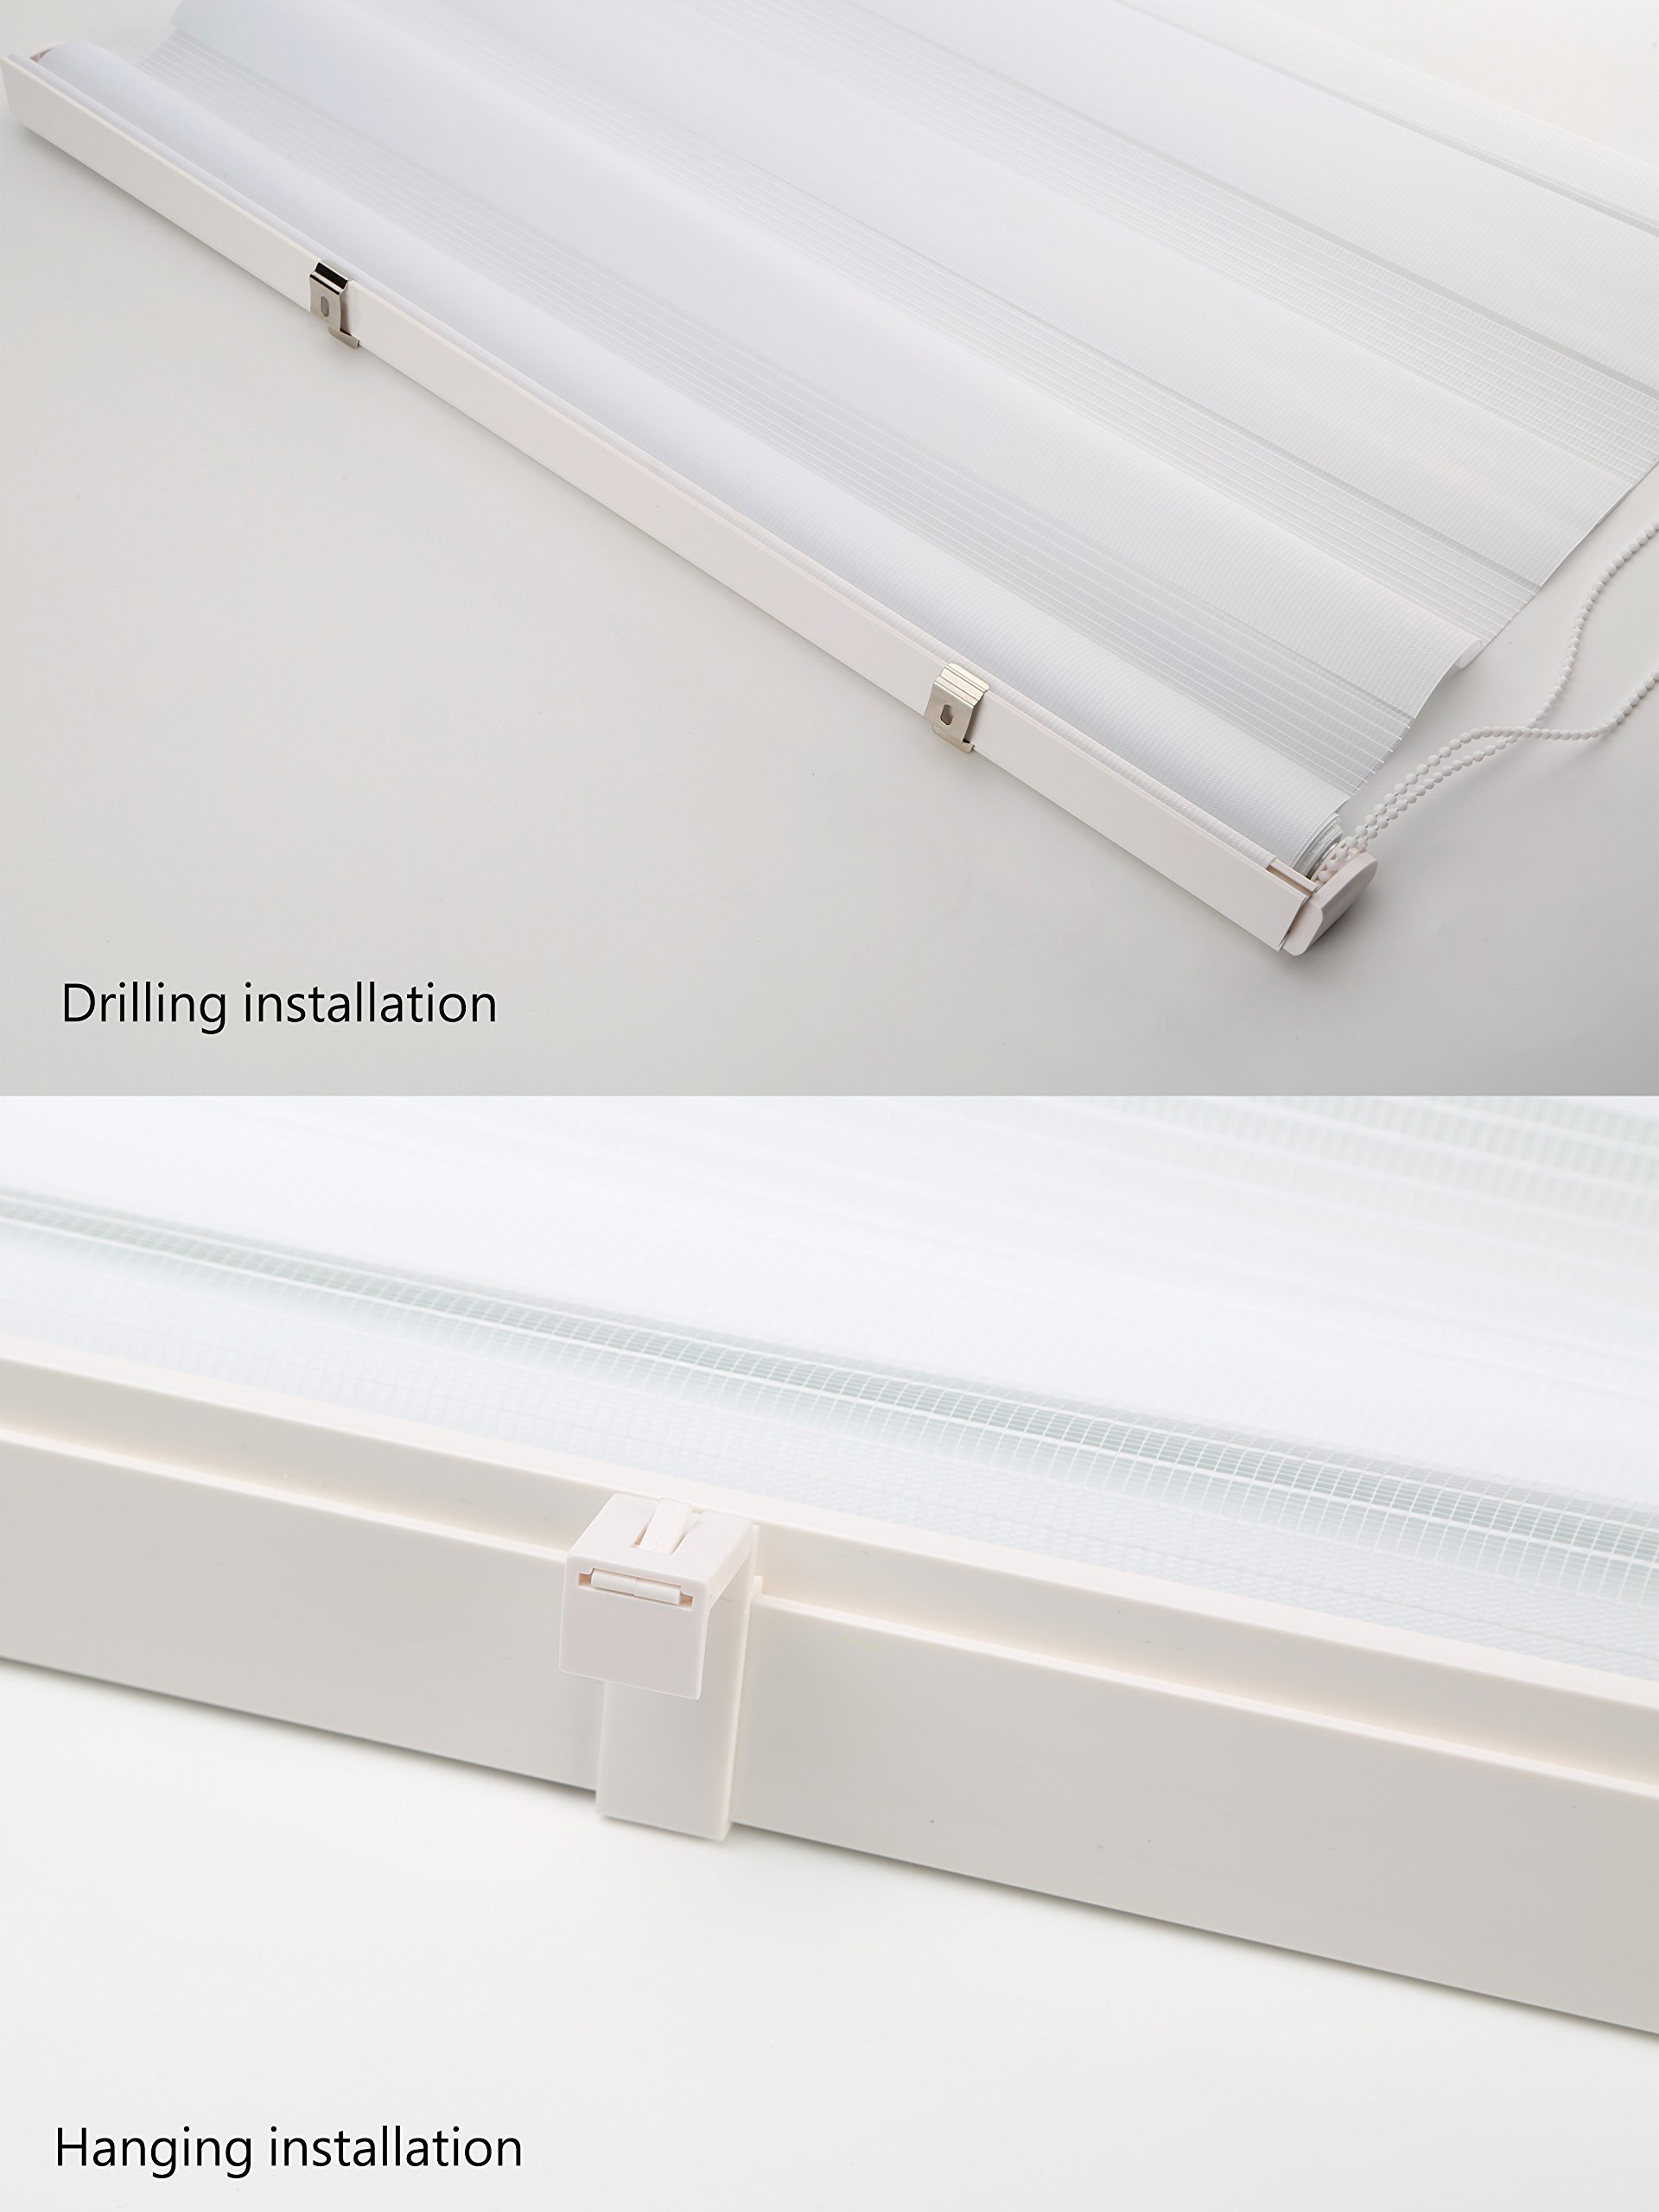 LUCKUP Easy Fix Zebra Roller Blind,Day and Night Blinds Curtains with Install Accessories (37.4'' x 59'', white) by LUCKUP (Image #5)